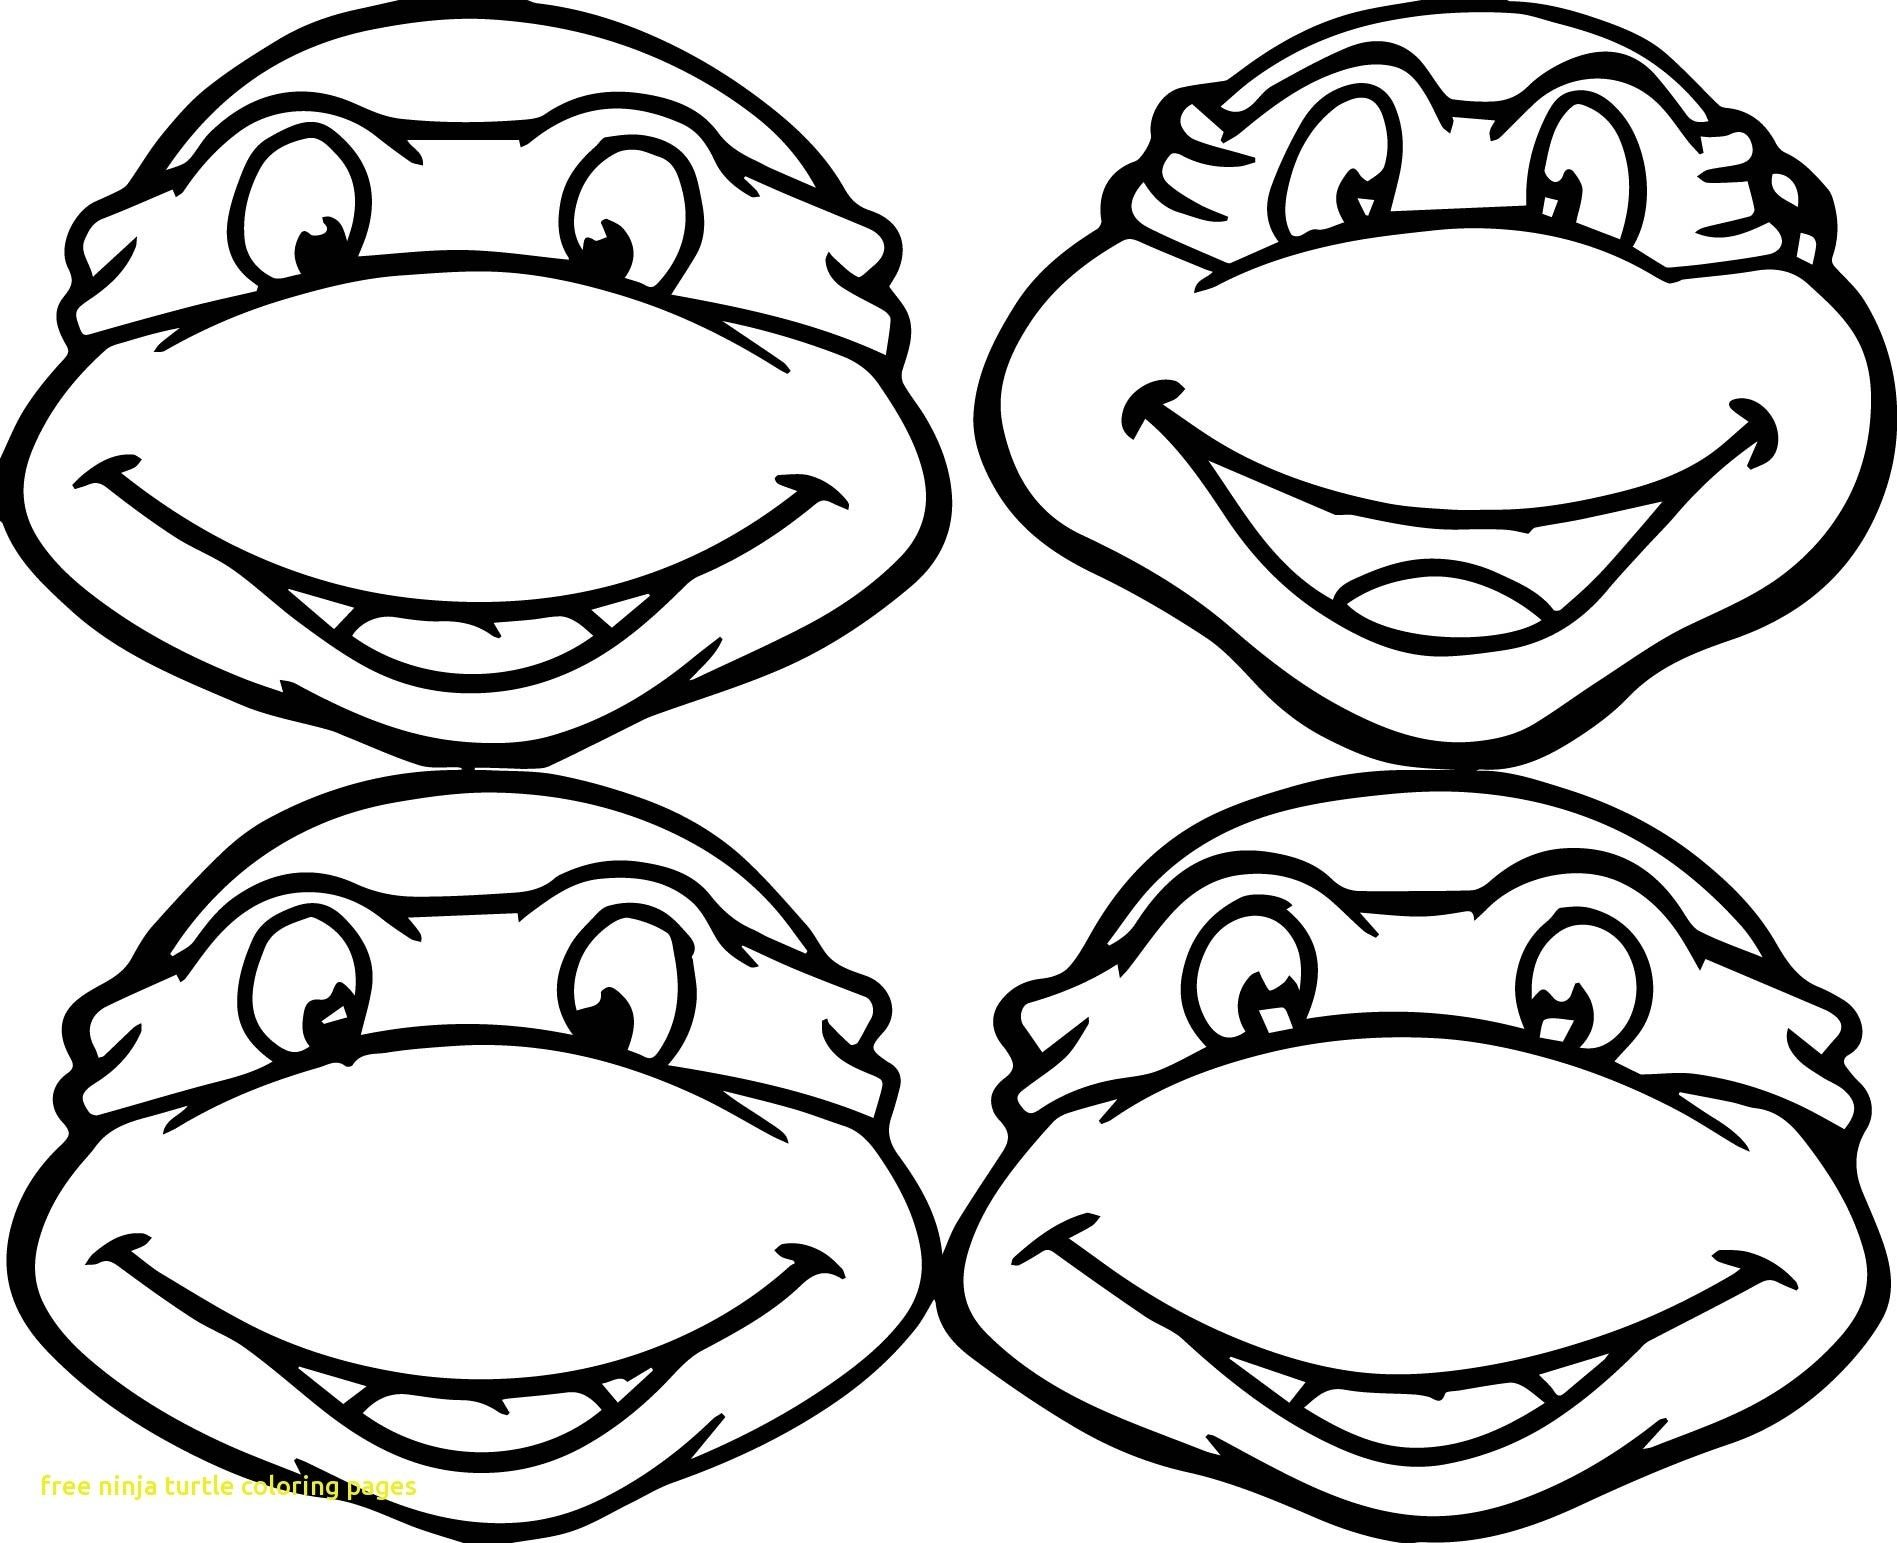 Tmnt Face Coloring Pages Download Turtle Coloring Pages Ninja Turtle Coloring Pages Ninja Turtle Drawing